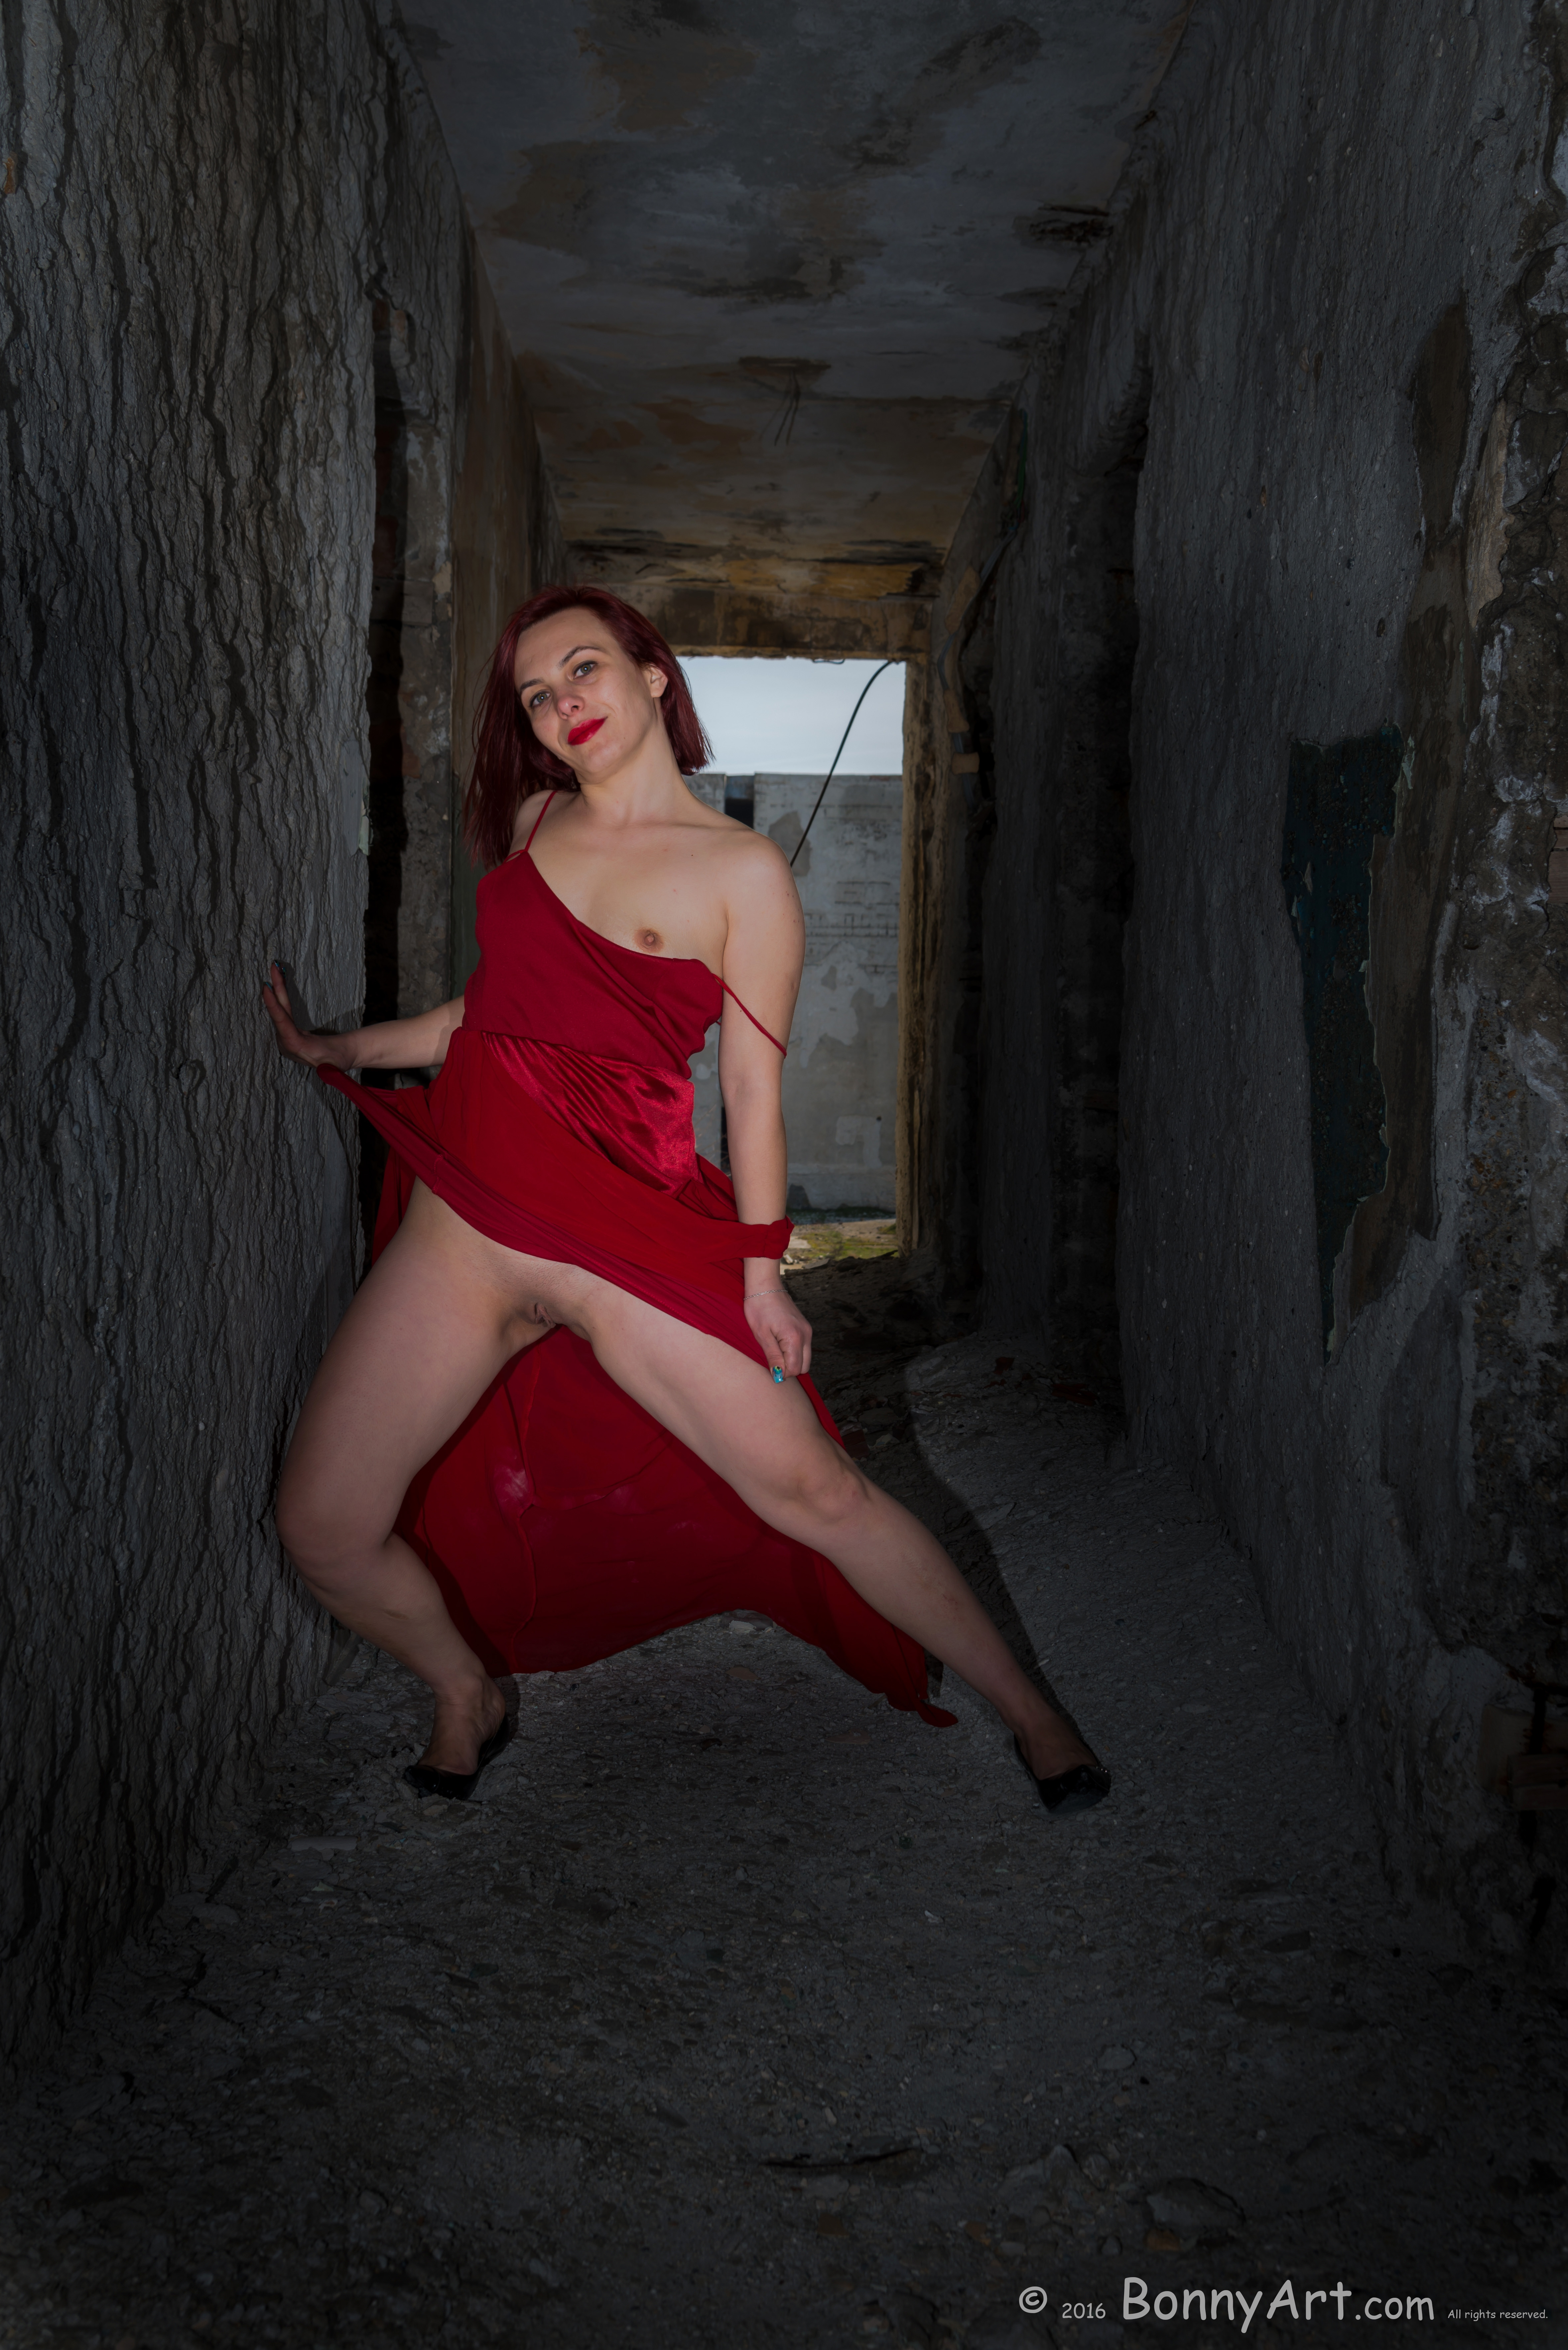 Flashing Pussy and Breast in a Ruined Hallway HD